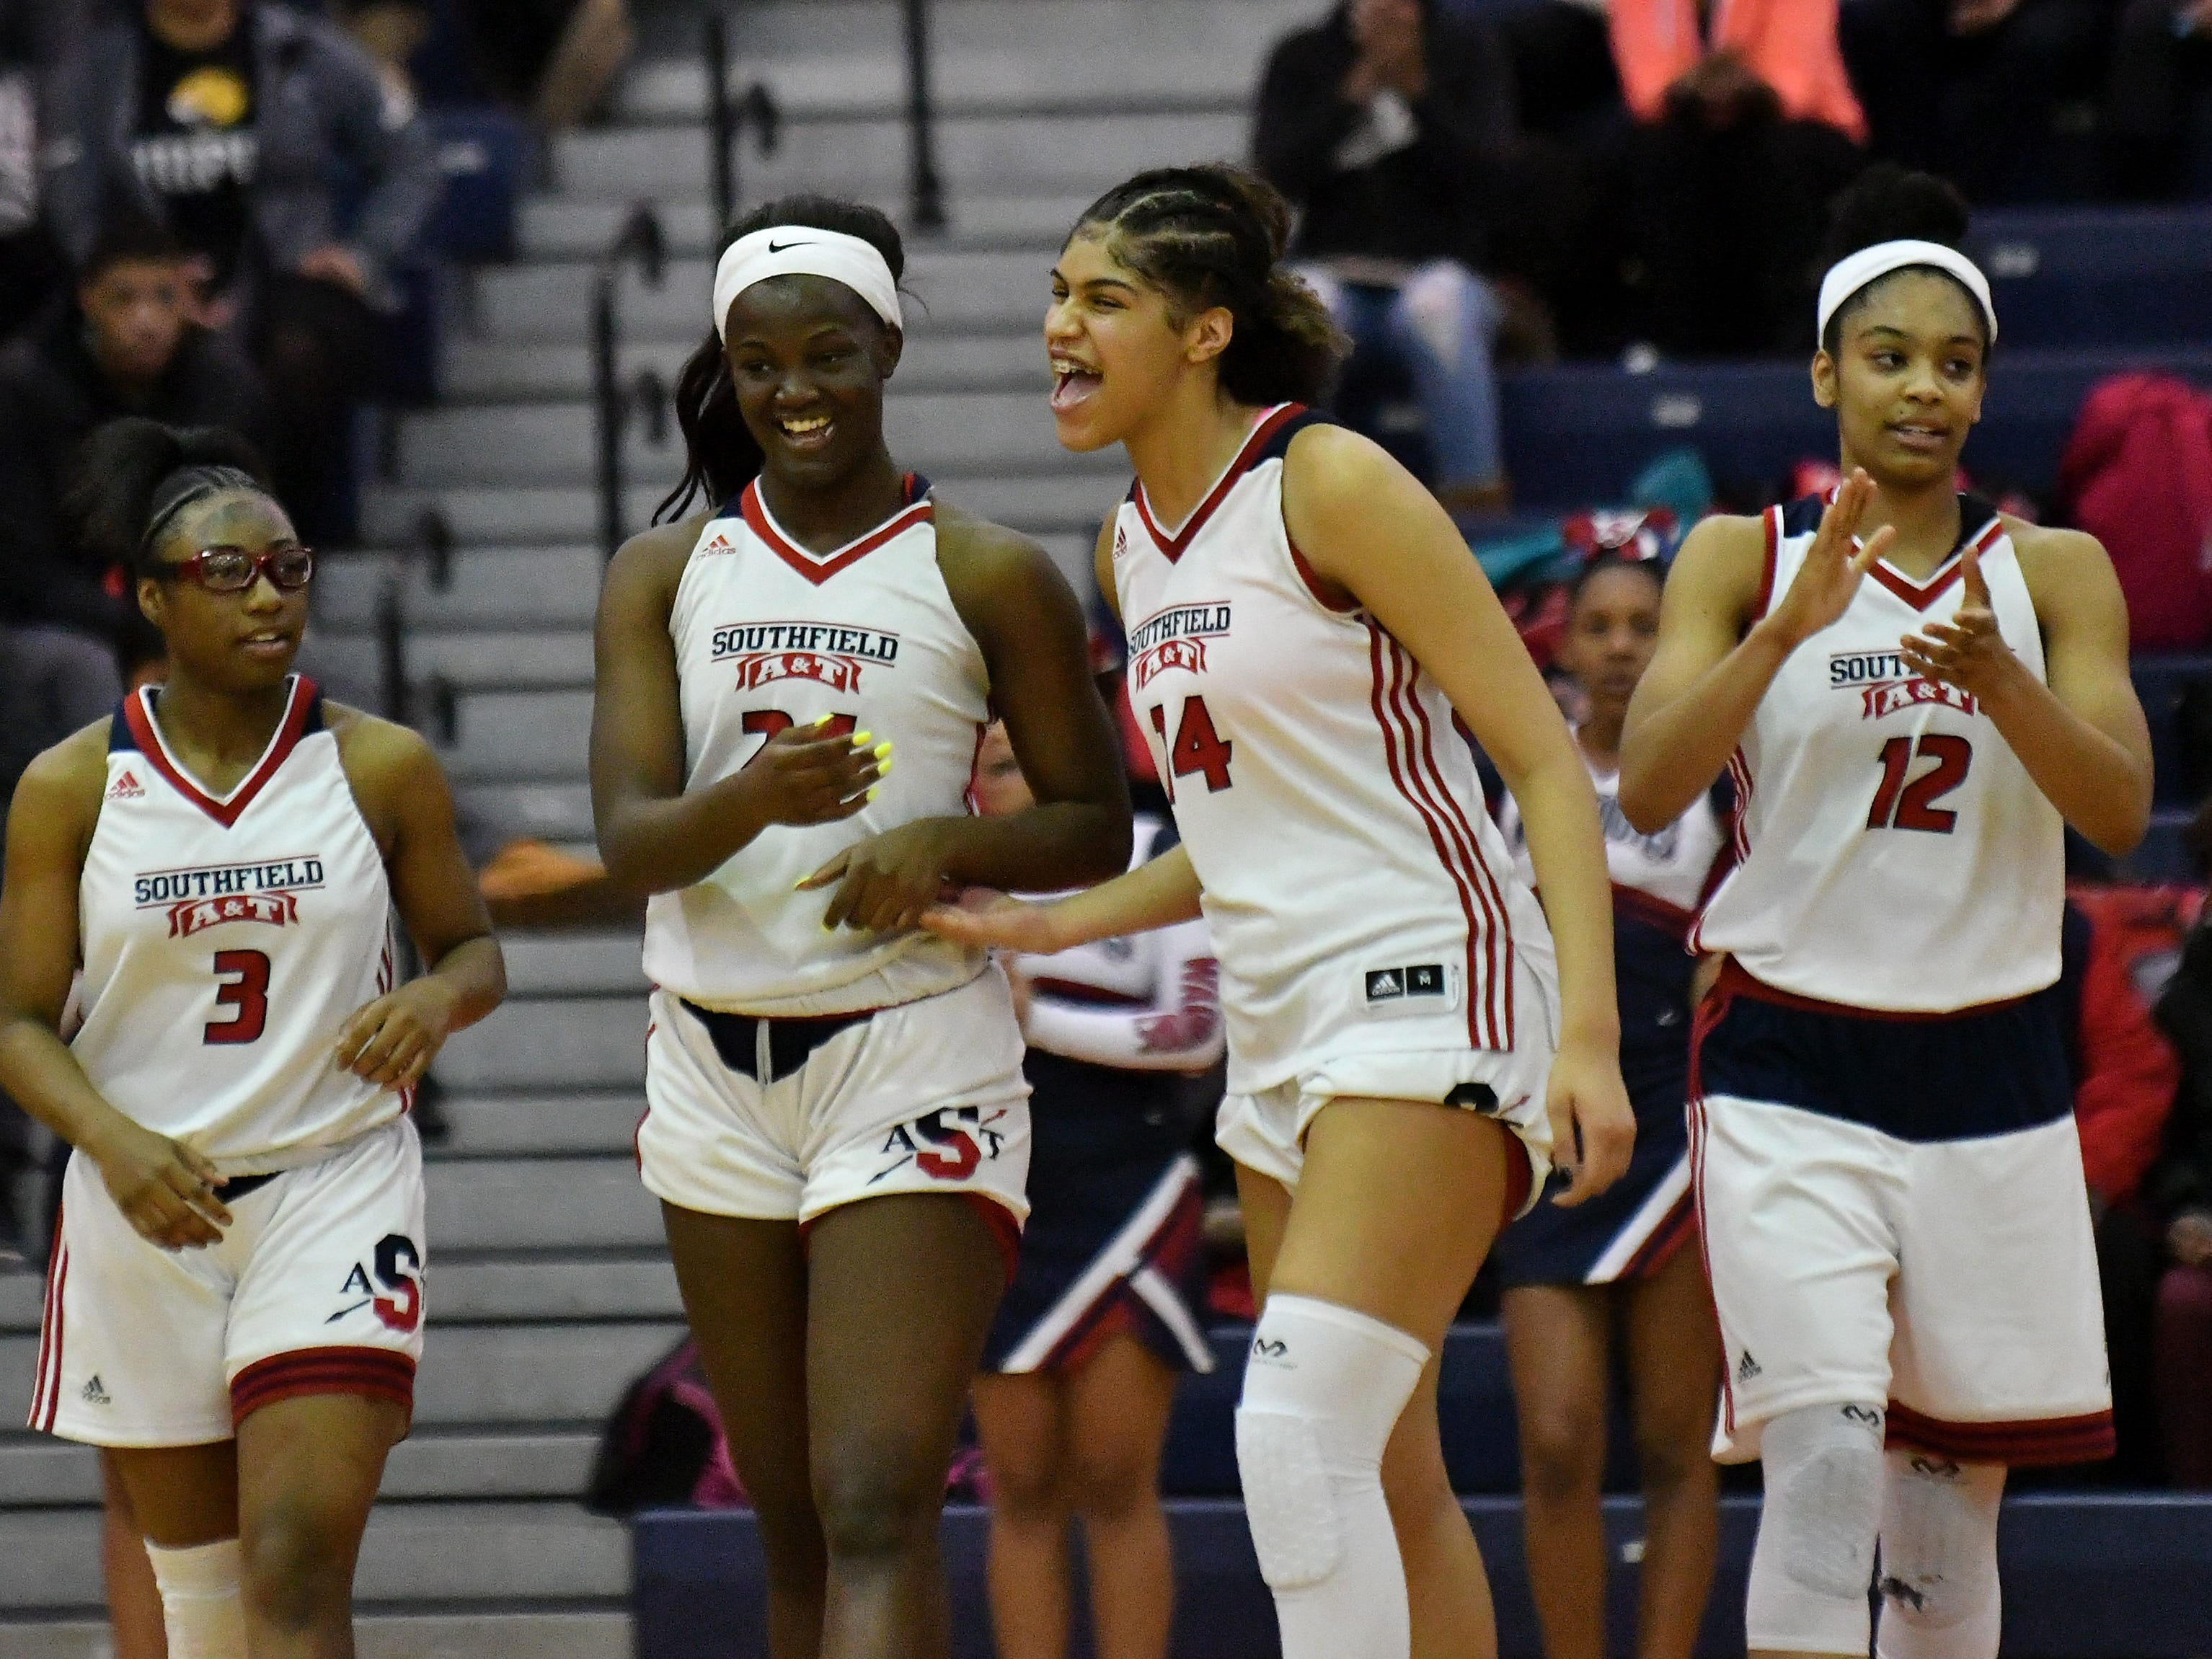 Southfield A&T teammates, from left, Kayiona Willis (3), Alexis Johnson (24), Jasmine Worthy (14) and Cheyenne McEvans are happy after a technical foul is called on Warren Cousino in the first half.